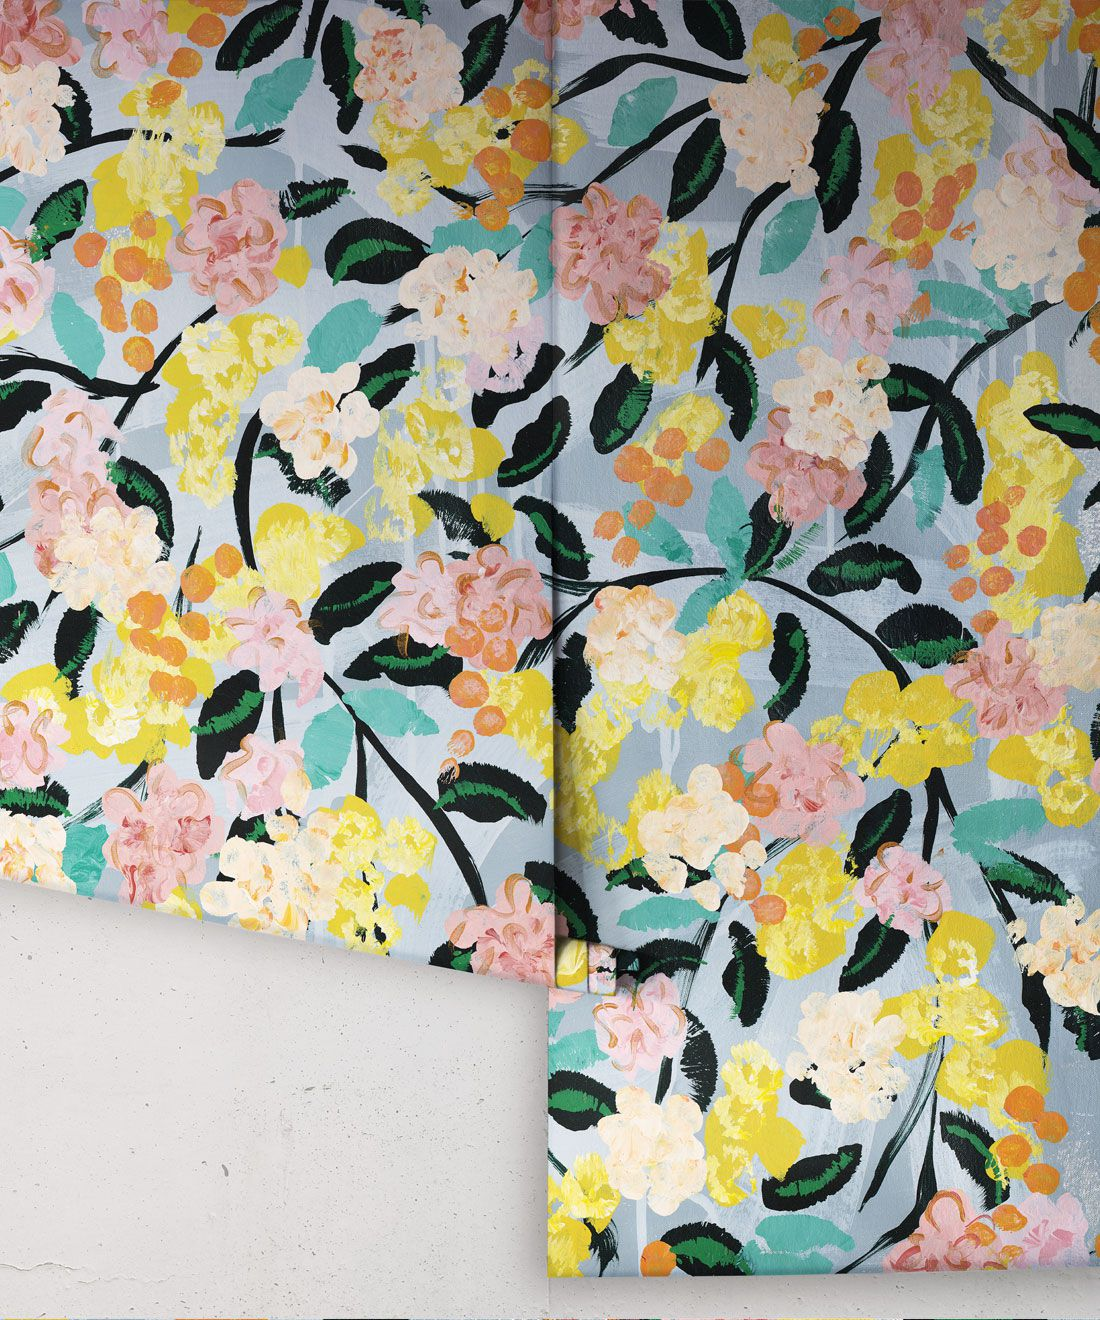 Blossom Wallpaper •Colorful Floral Wallpaper • Tiff Manuell • Abstract Expressionist Wallpaper • Rolls